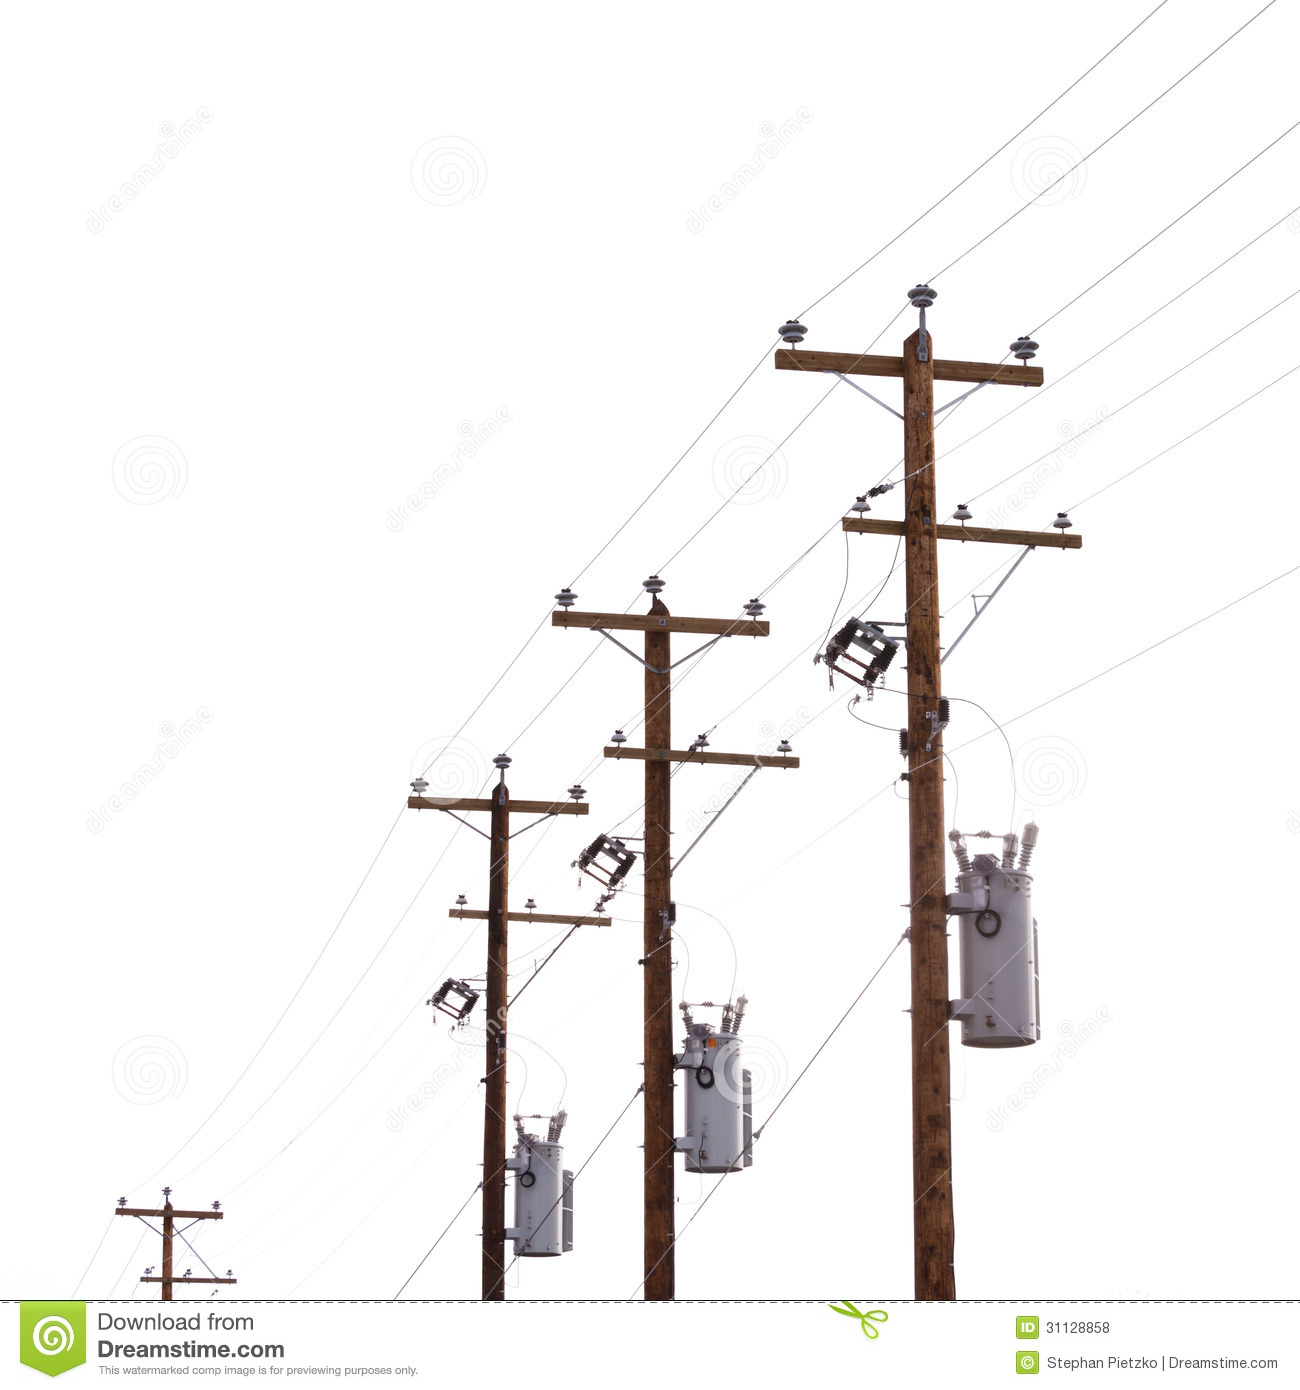 Row of power pole transformers